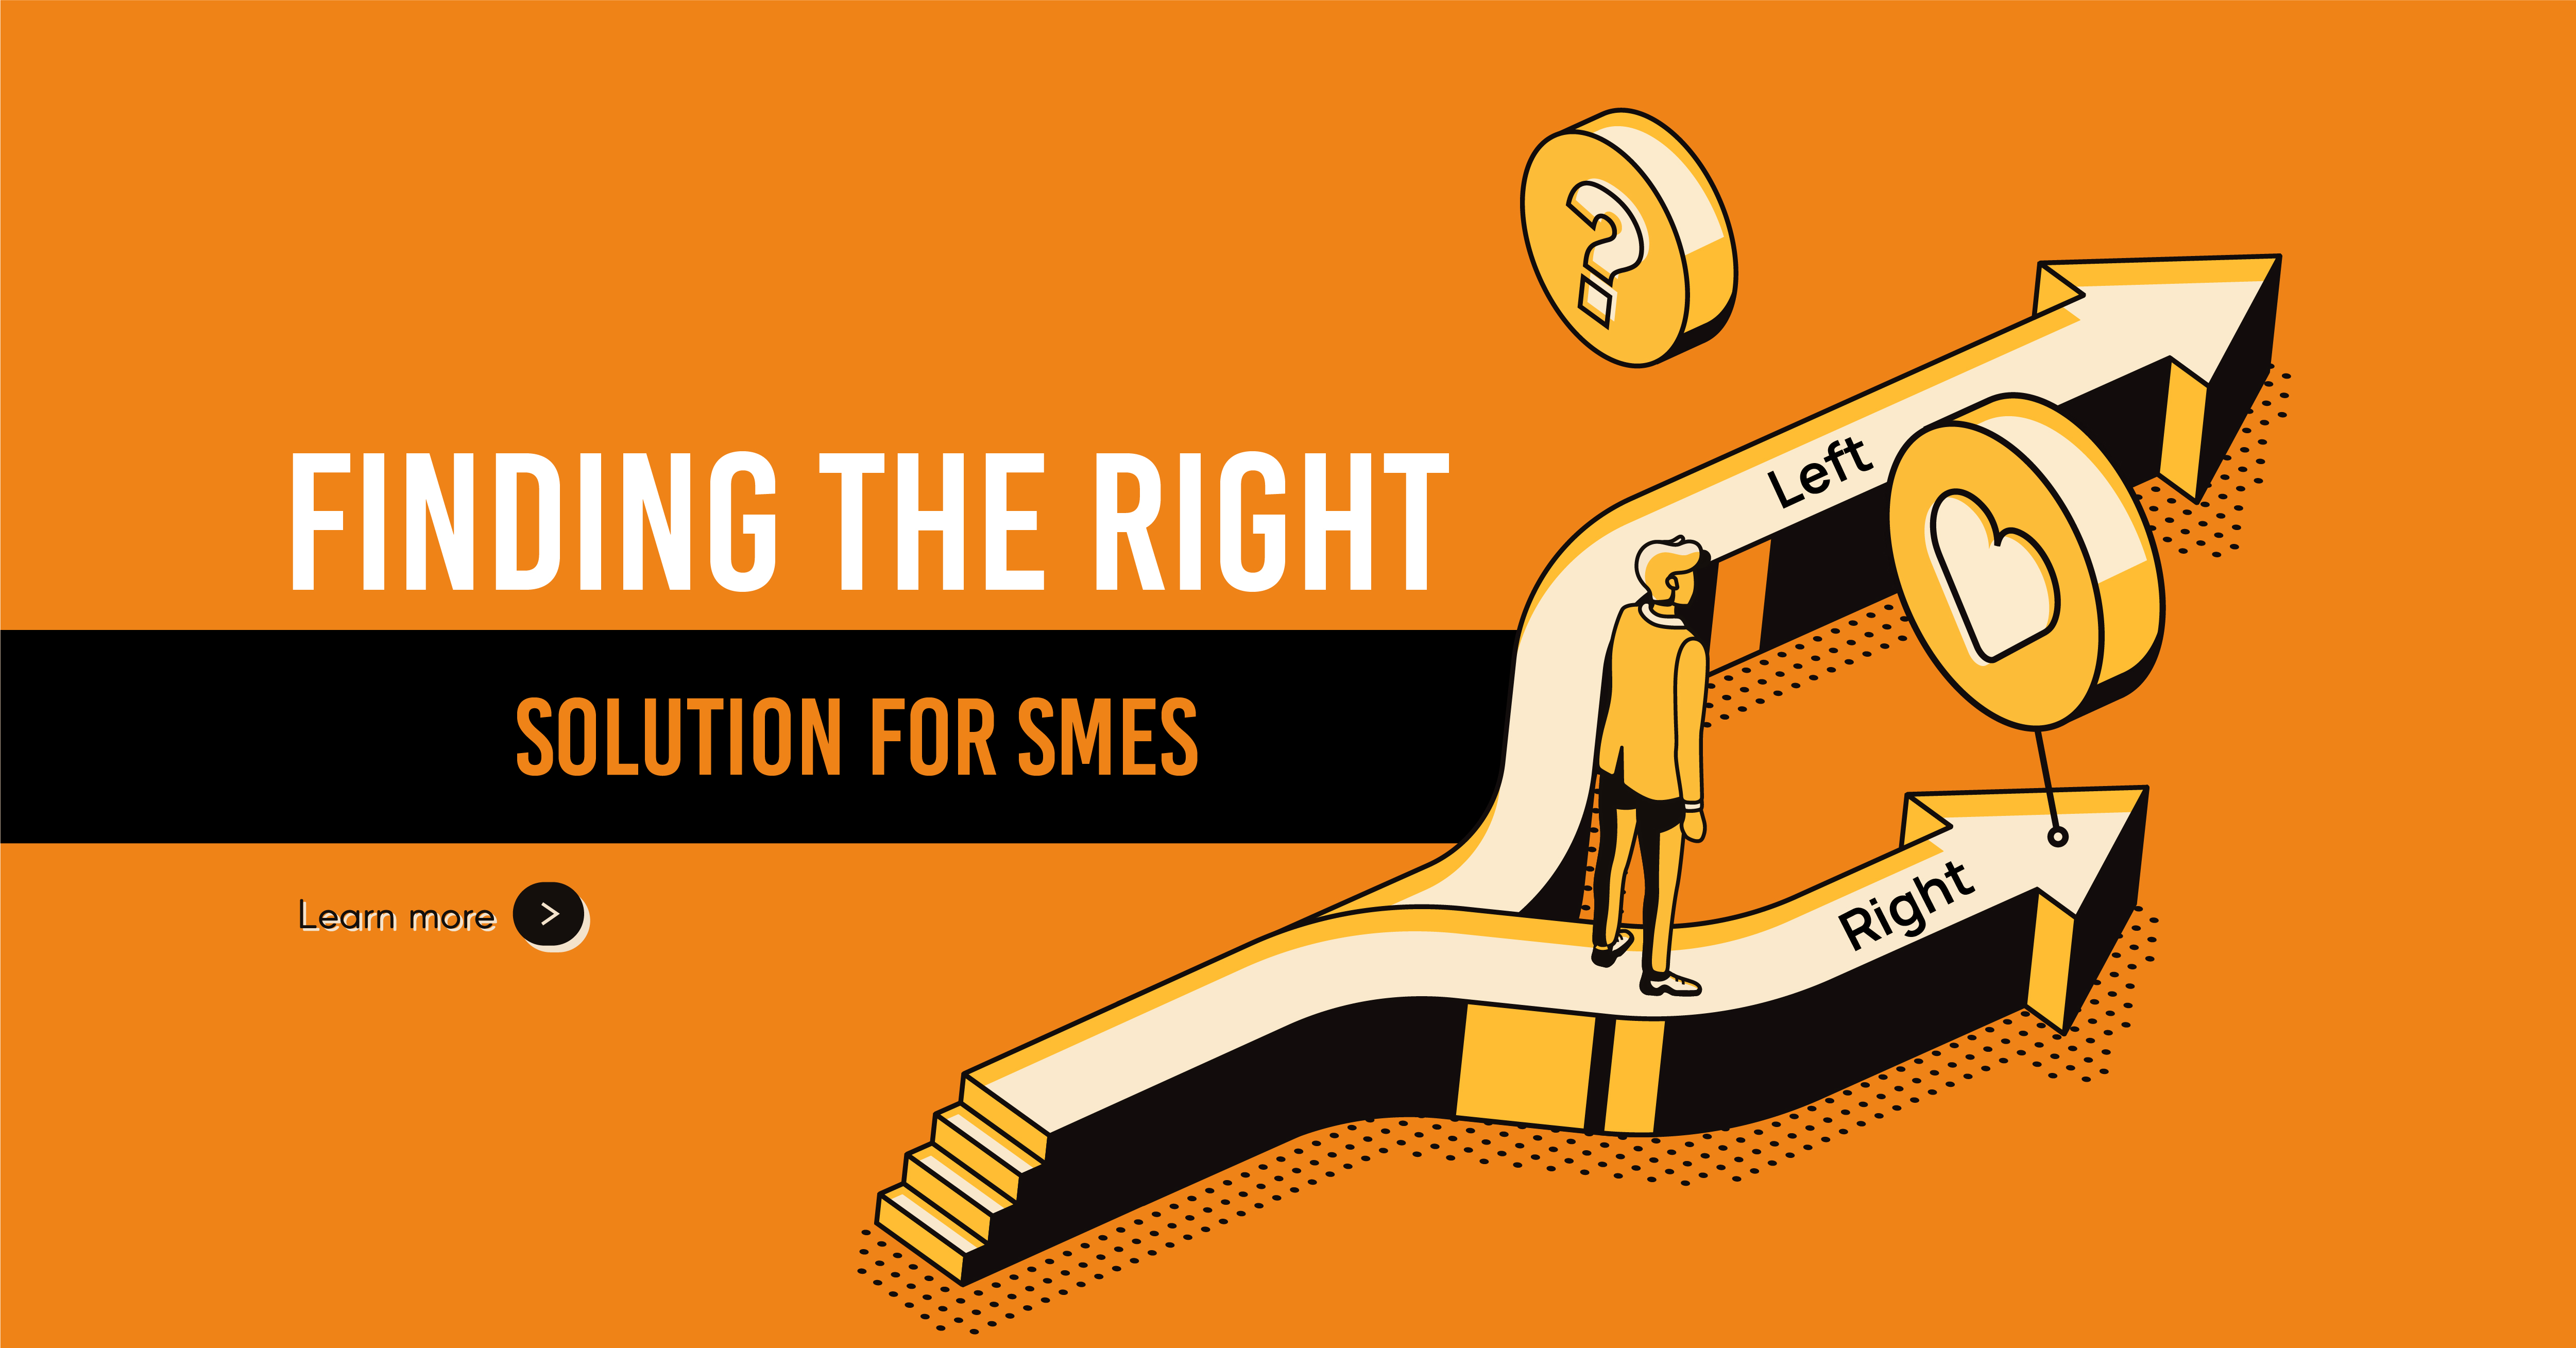 Finding The Right Solution For SMEs